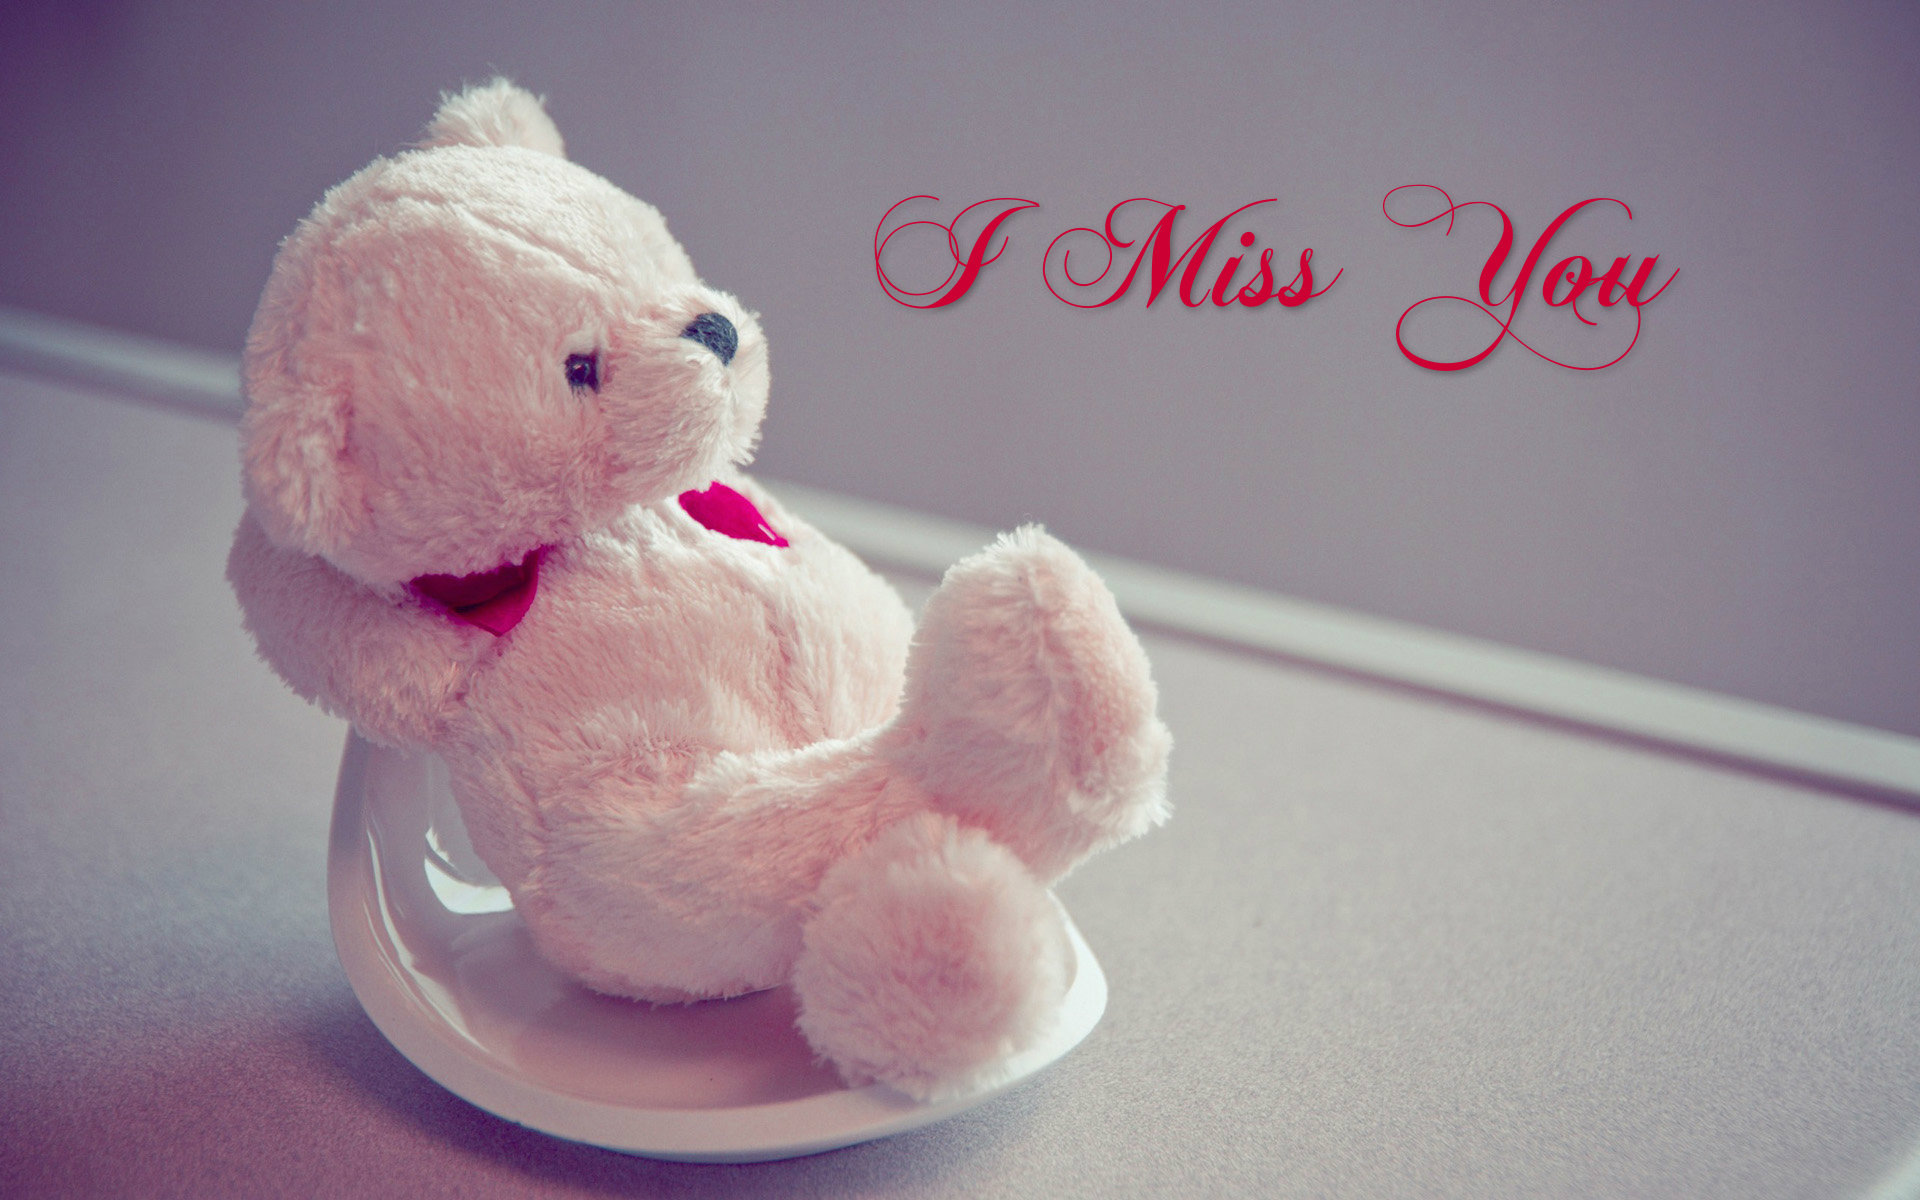 Teddy bear with love images - photo#17